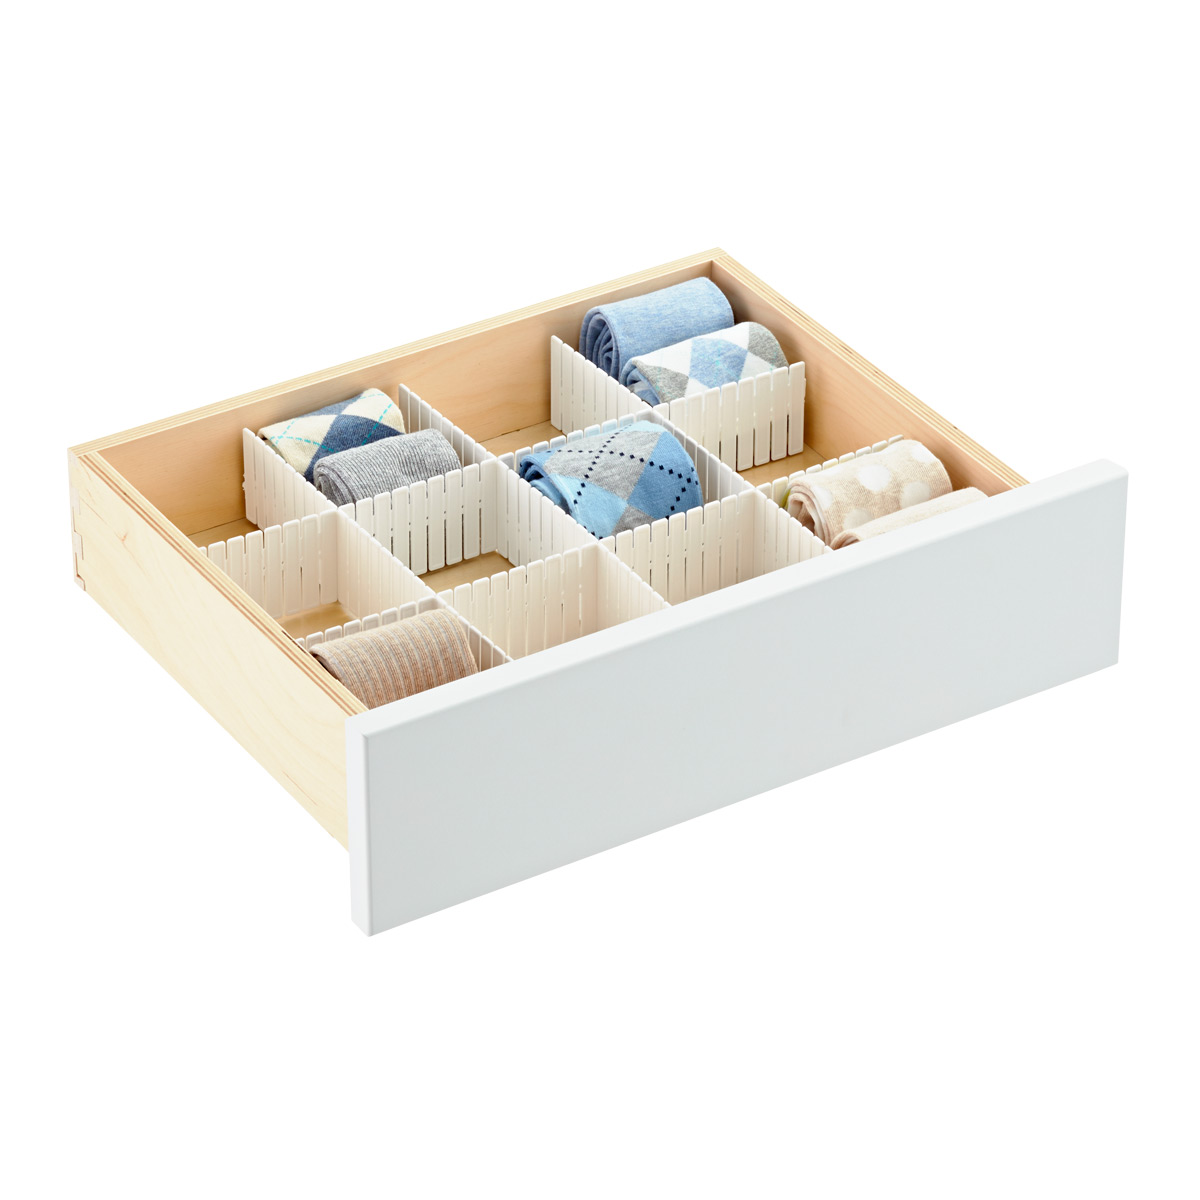 Slotted Interlocking Drawer Organizers